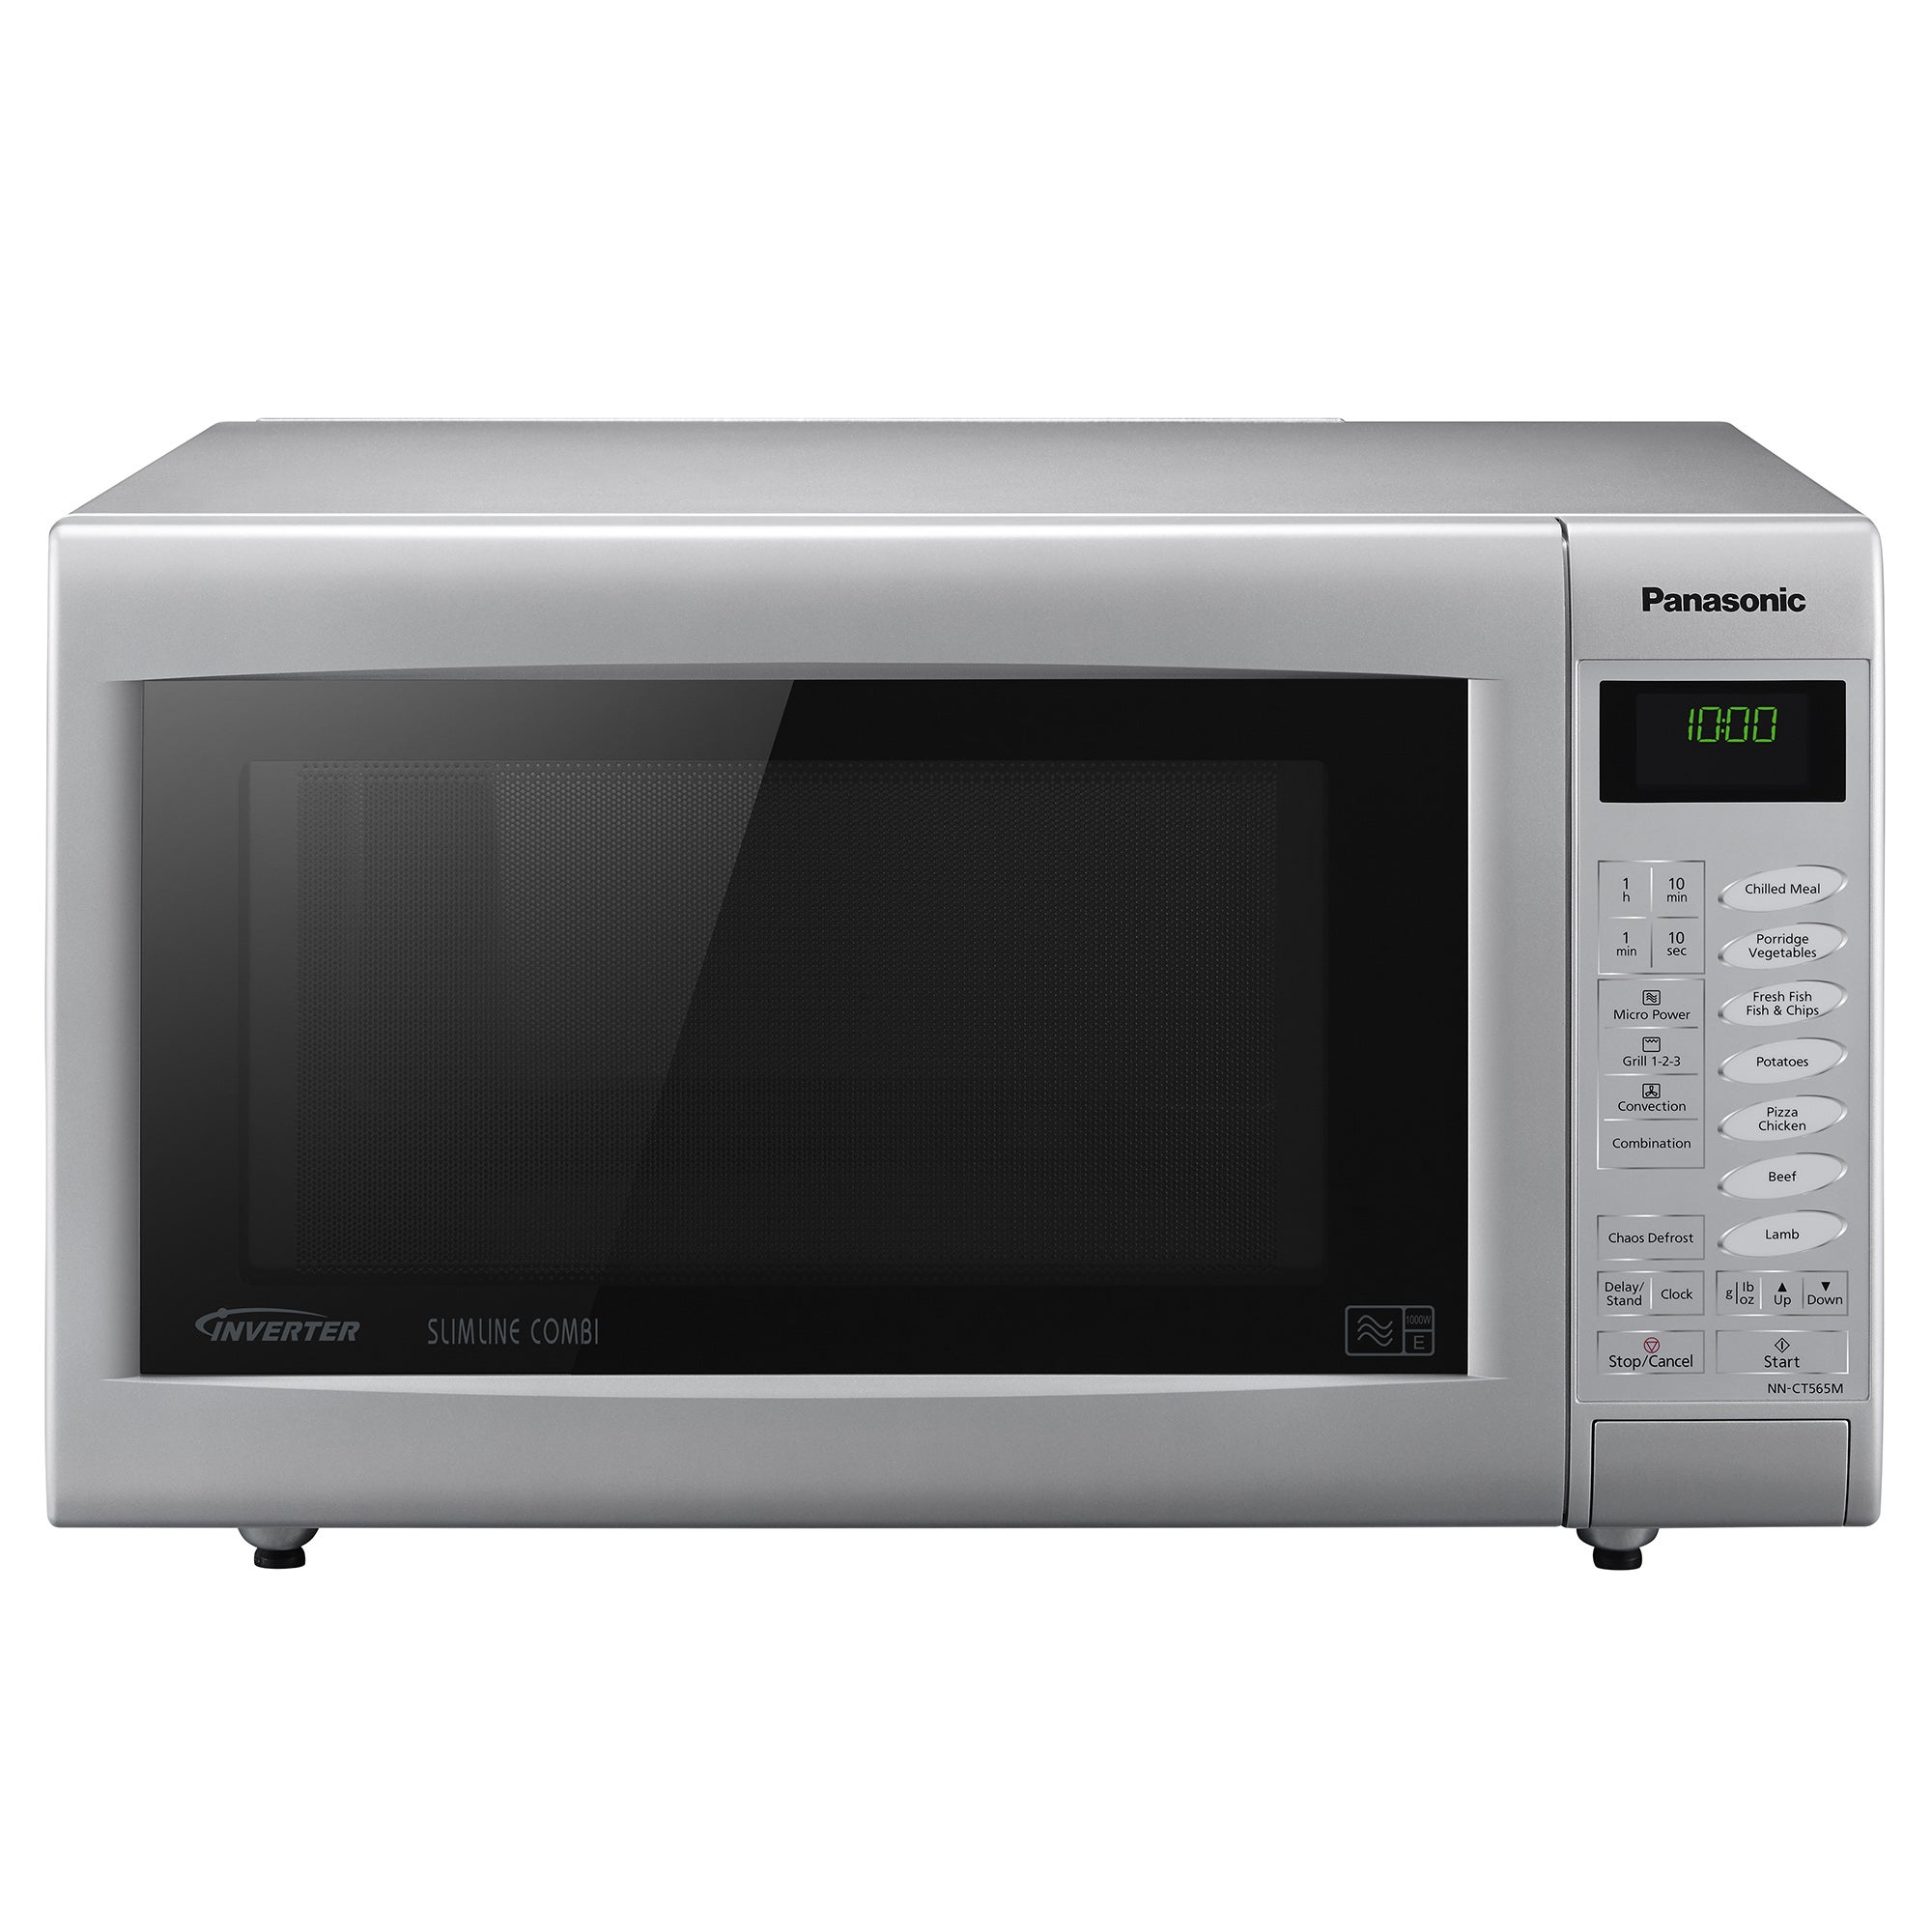 Panasonic NNCT565MBPQ Silver 3 in 1 Combination Microwave Oven and Grill Silver